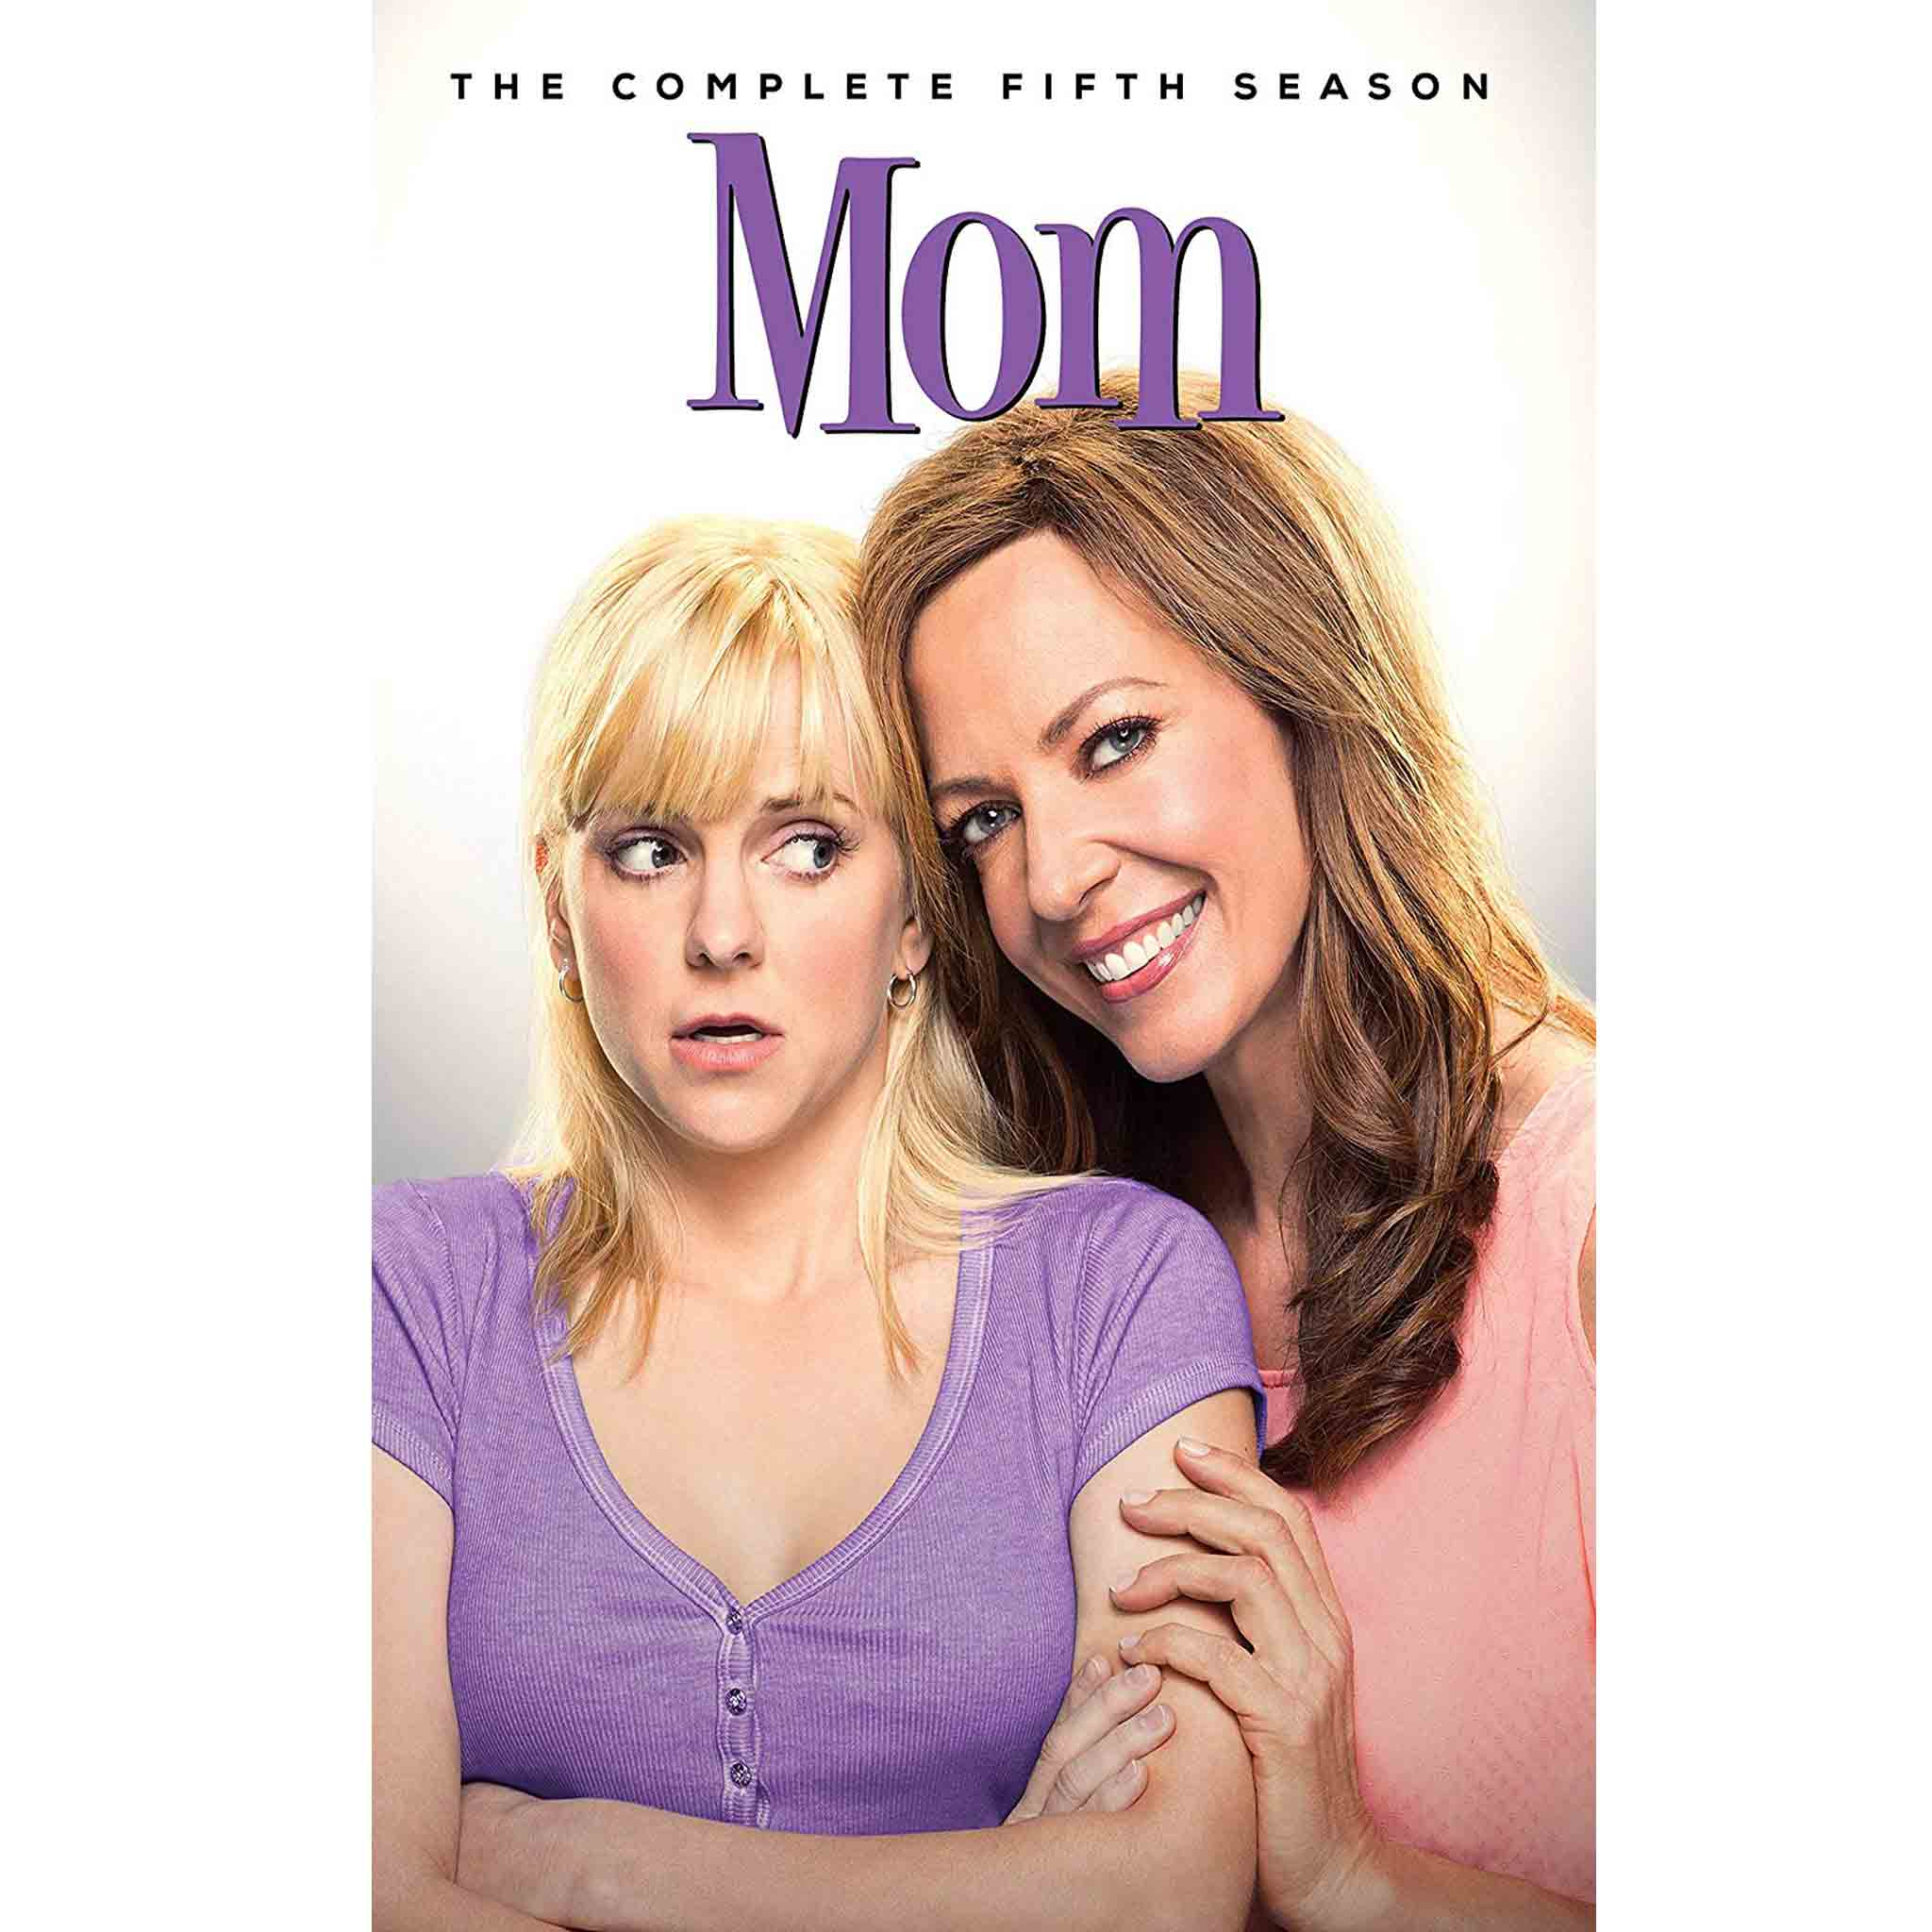 Mom Season 5 (DVD) - DVDsHQ